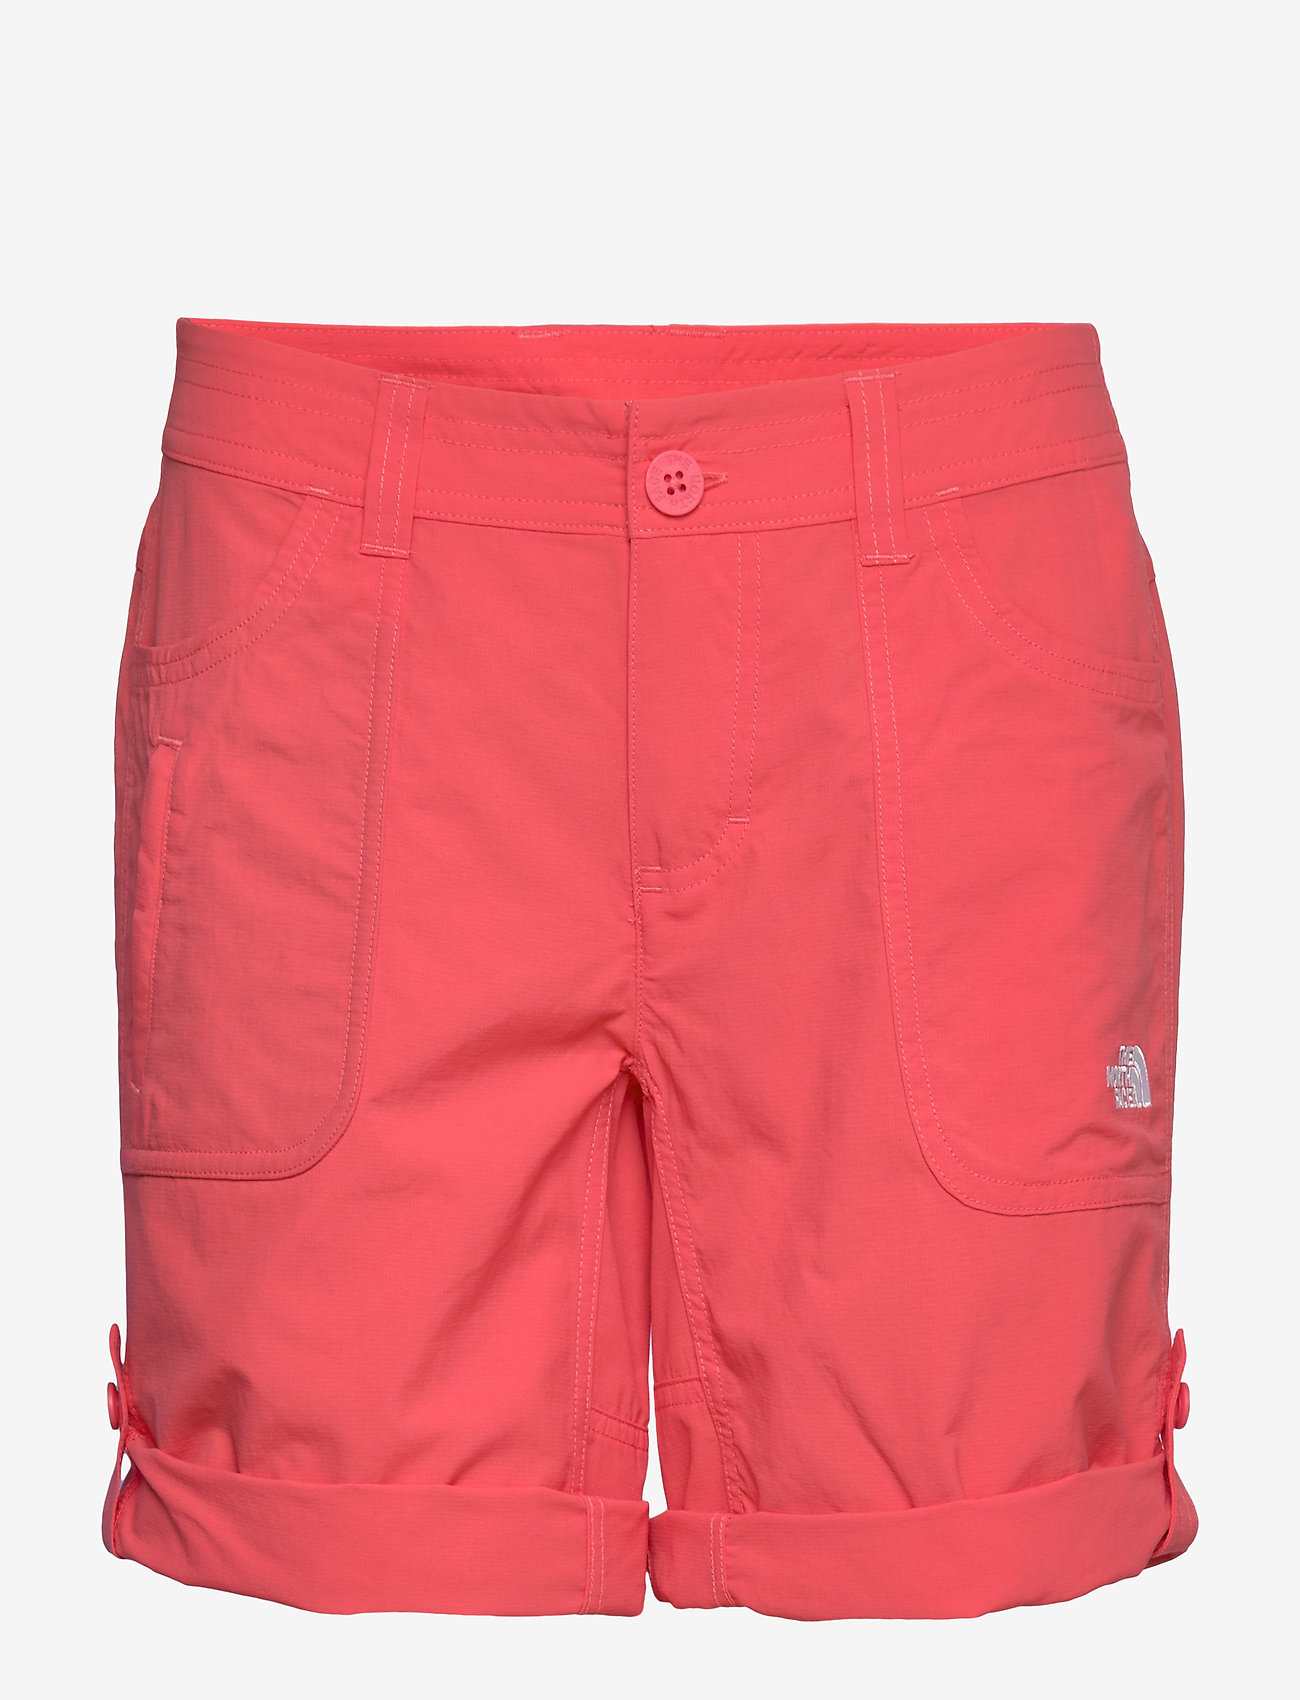 The North Face W HORIZON SUNNYSIDE - Shorts CAYENNE RED - Dameklær Spesialtilbud